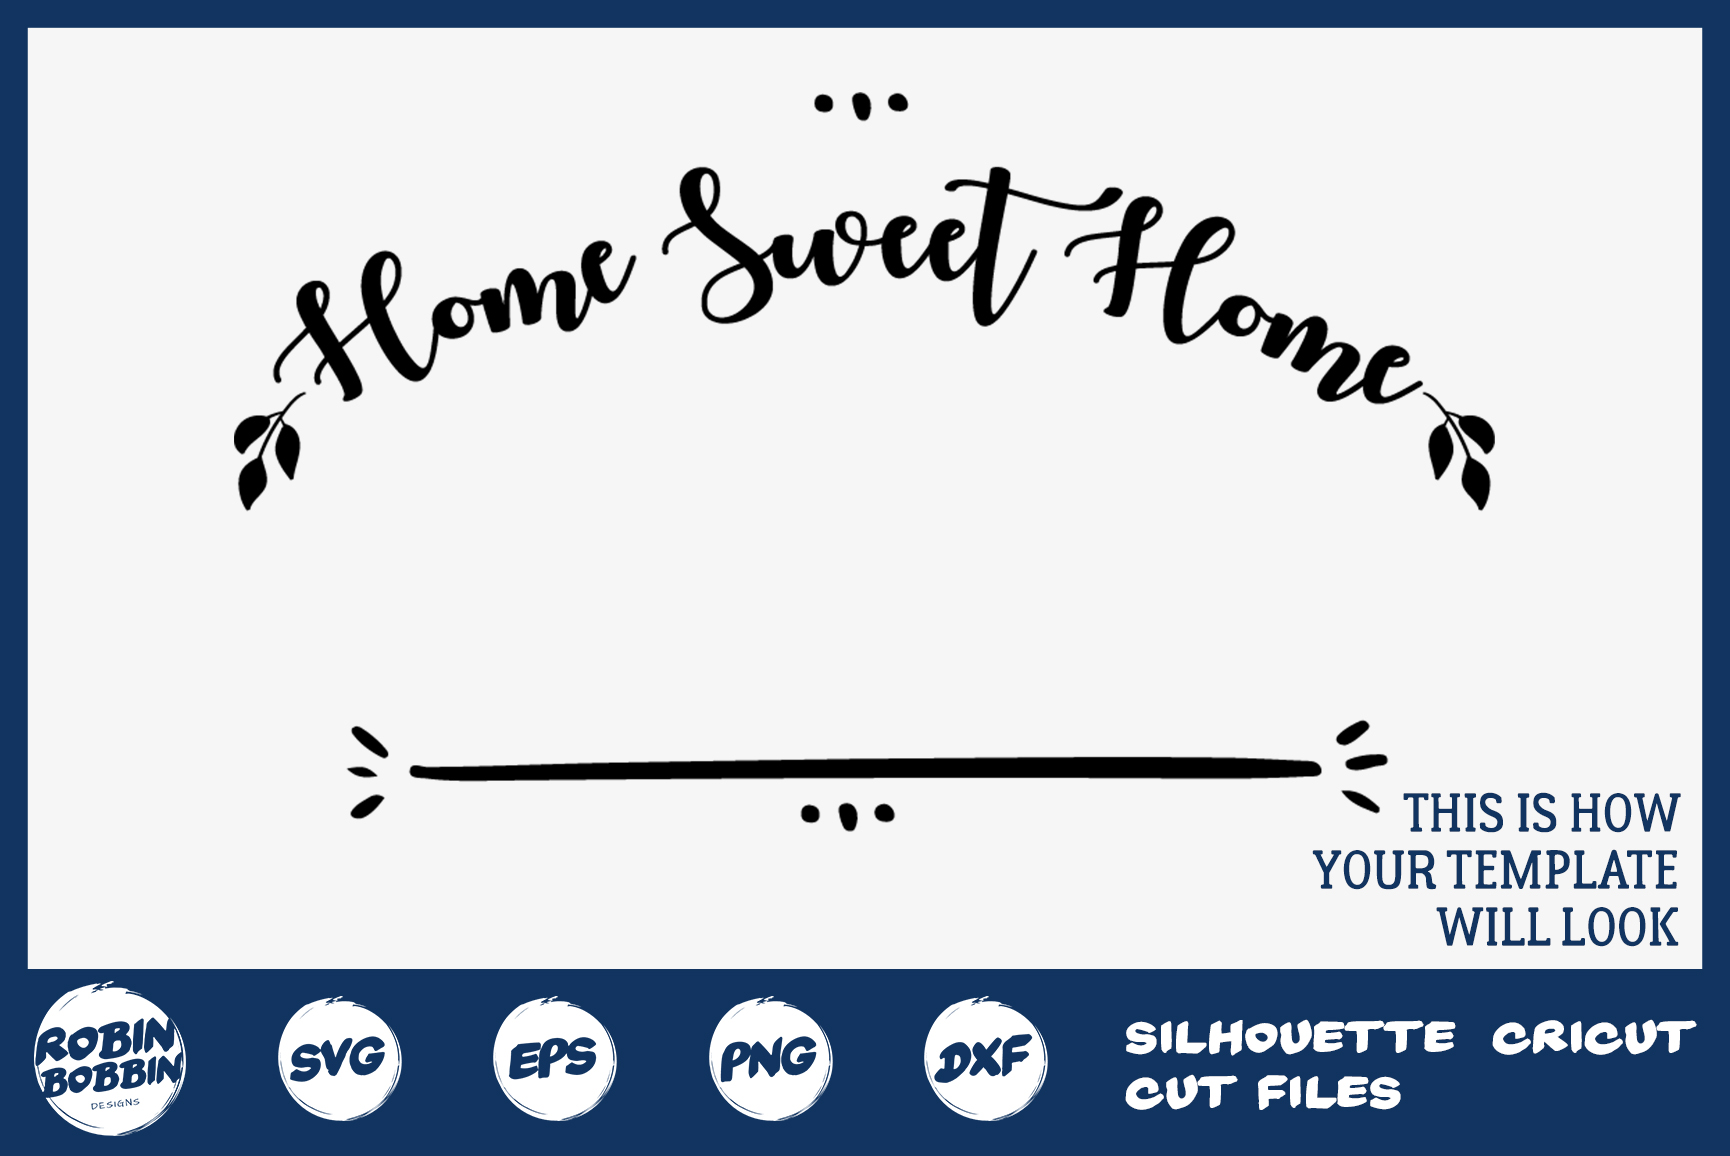 Family SVG, Newlyweds SVG, Family Tree svg, Home Sweet Home example image 2